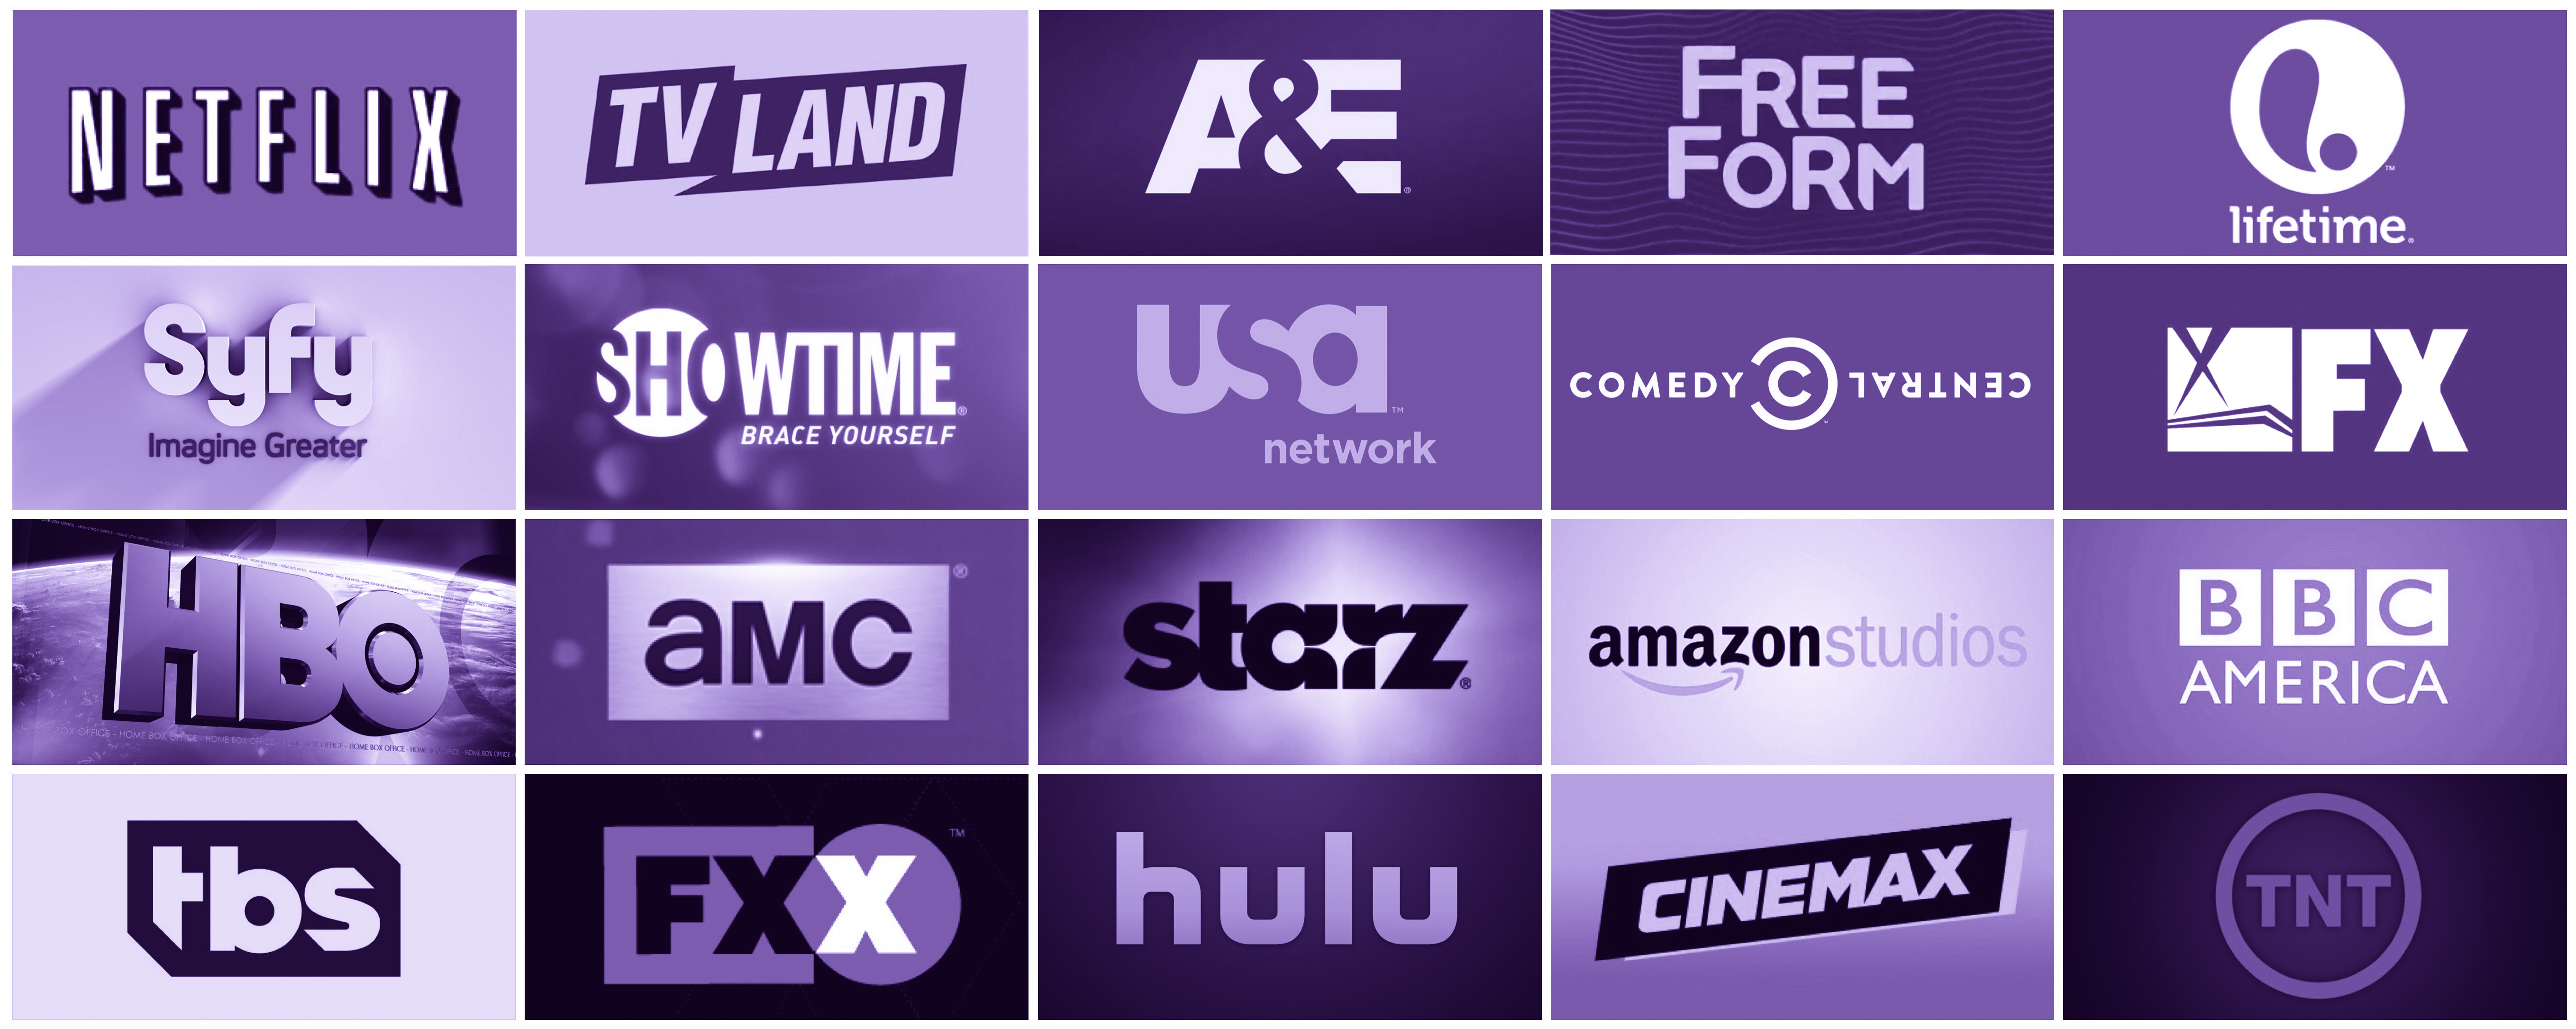 Television Series Of Cancelled Or Renewed Status Of Cable Streaming Tv Shows A D